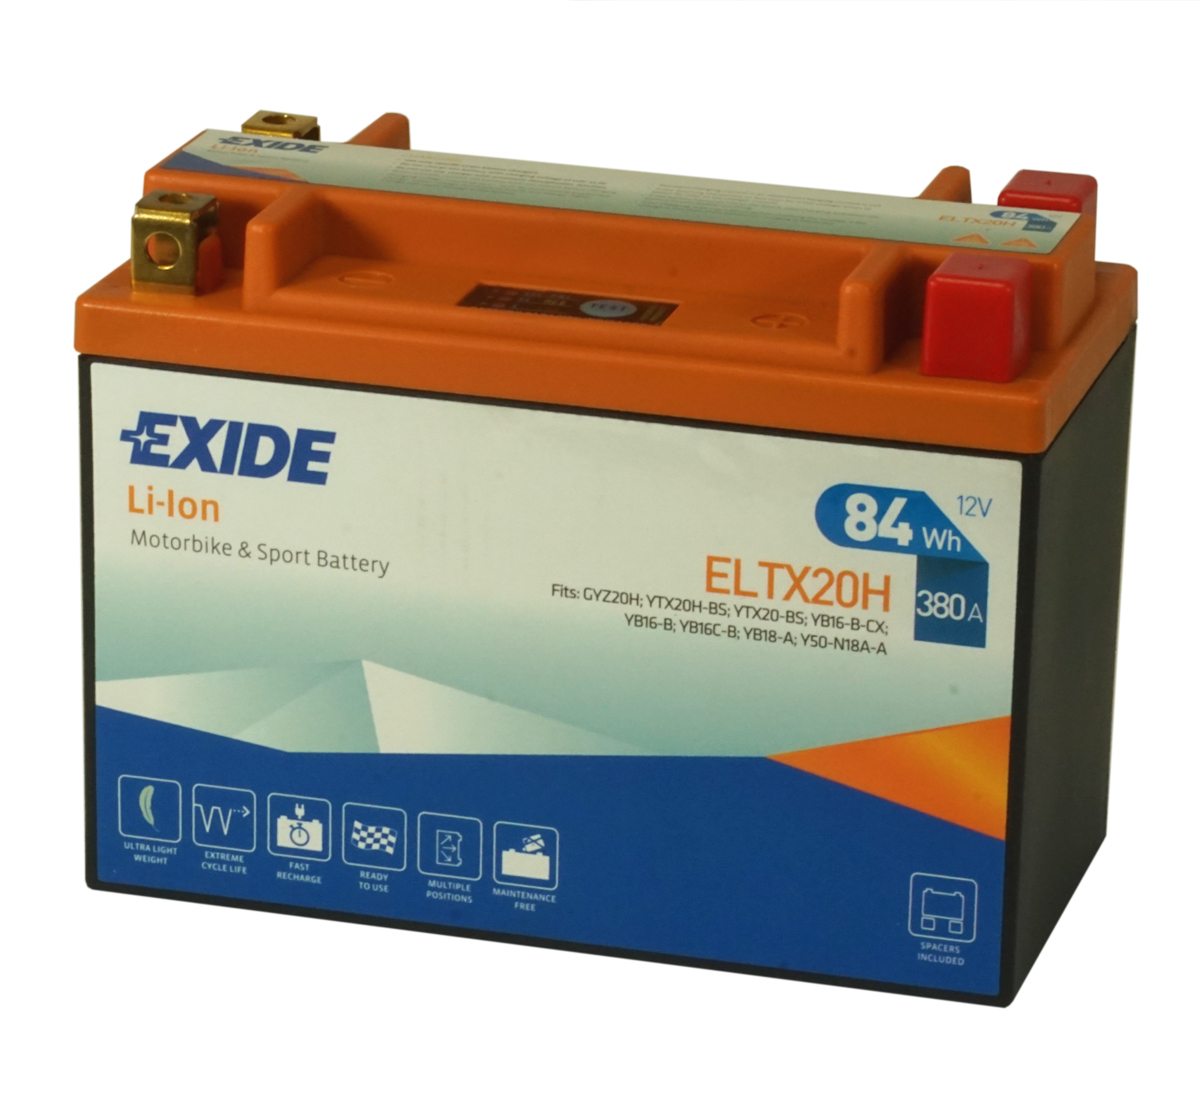 Exide ELTX20H Lithium Motorcycle Battery